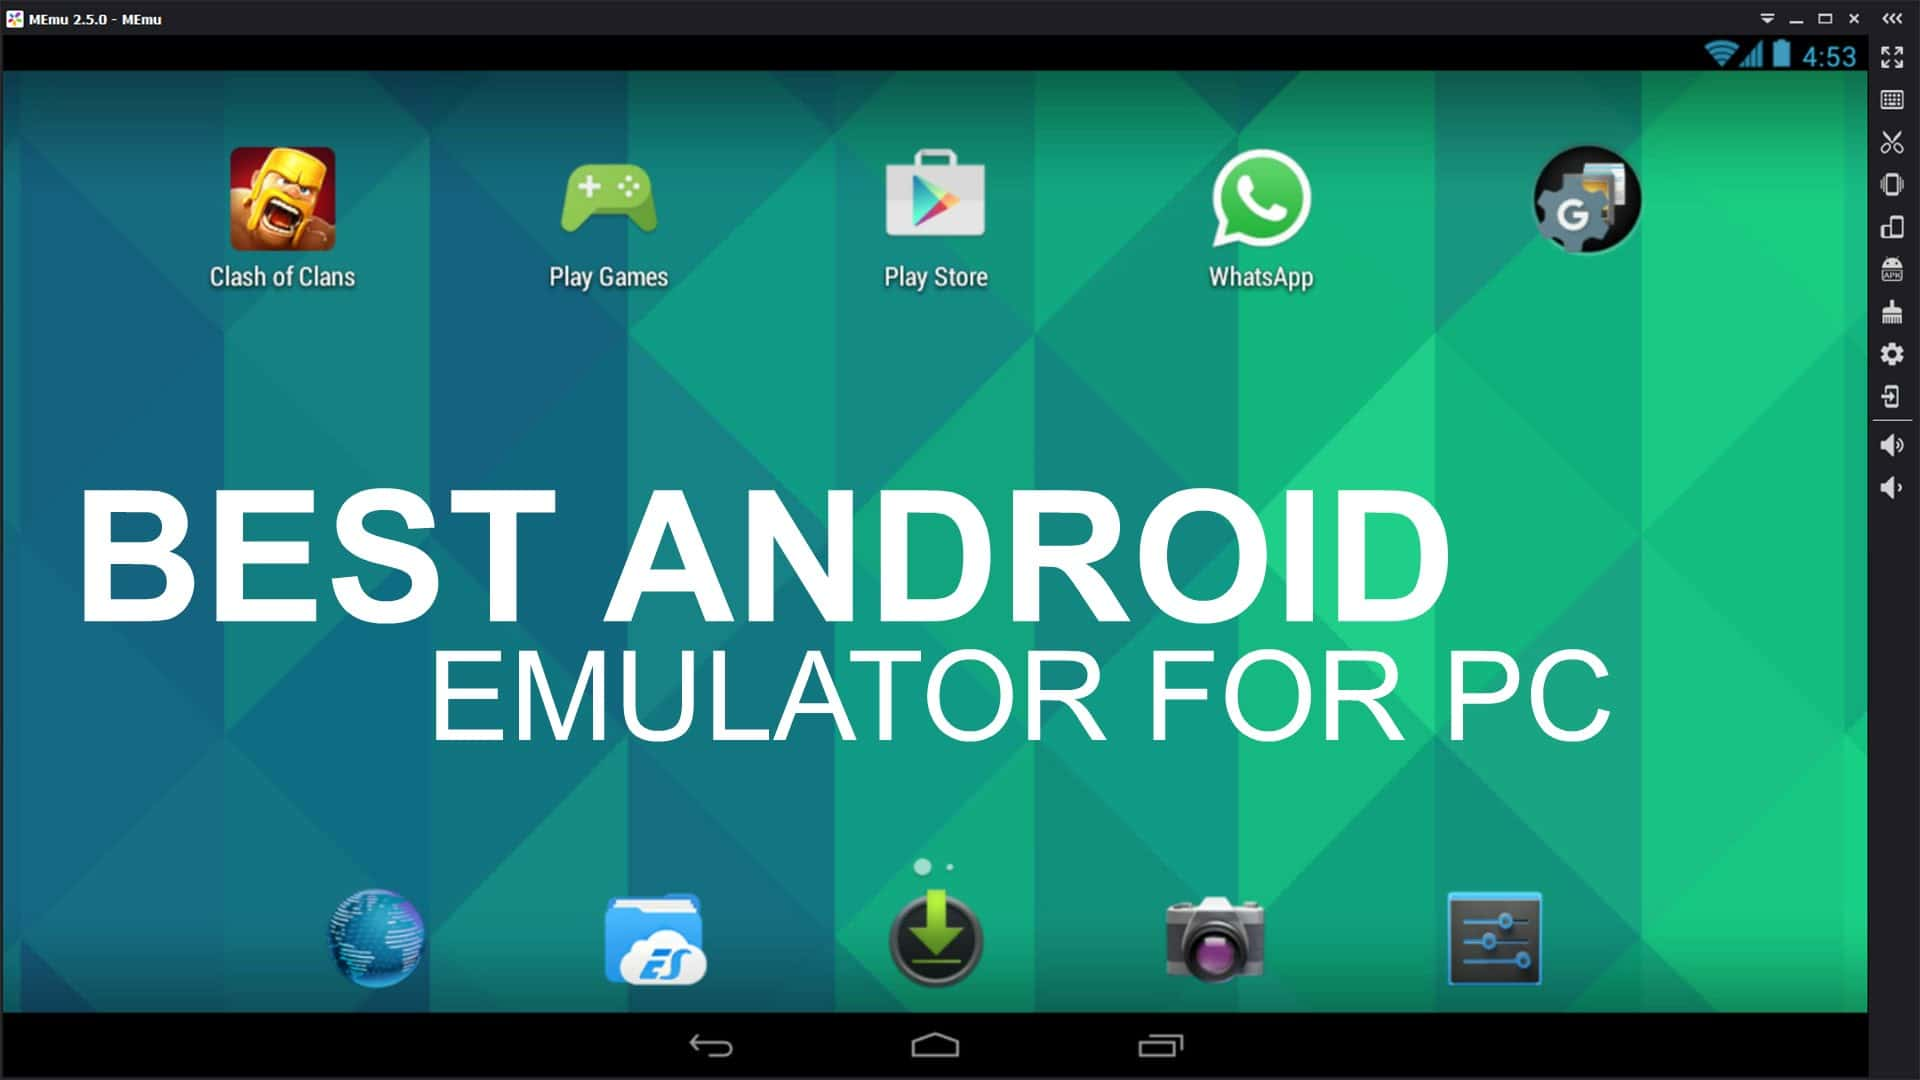 These Are The Best Android Emulators For PC And Mac